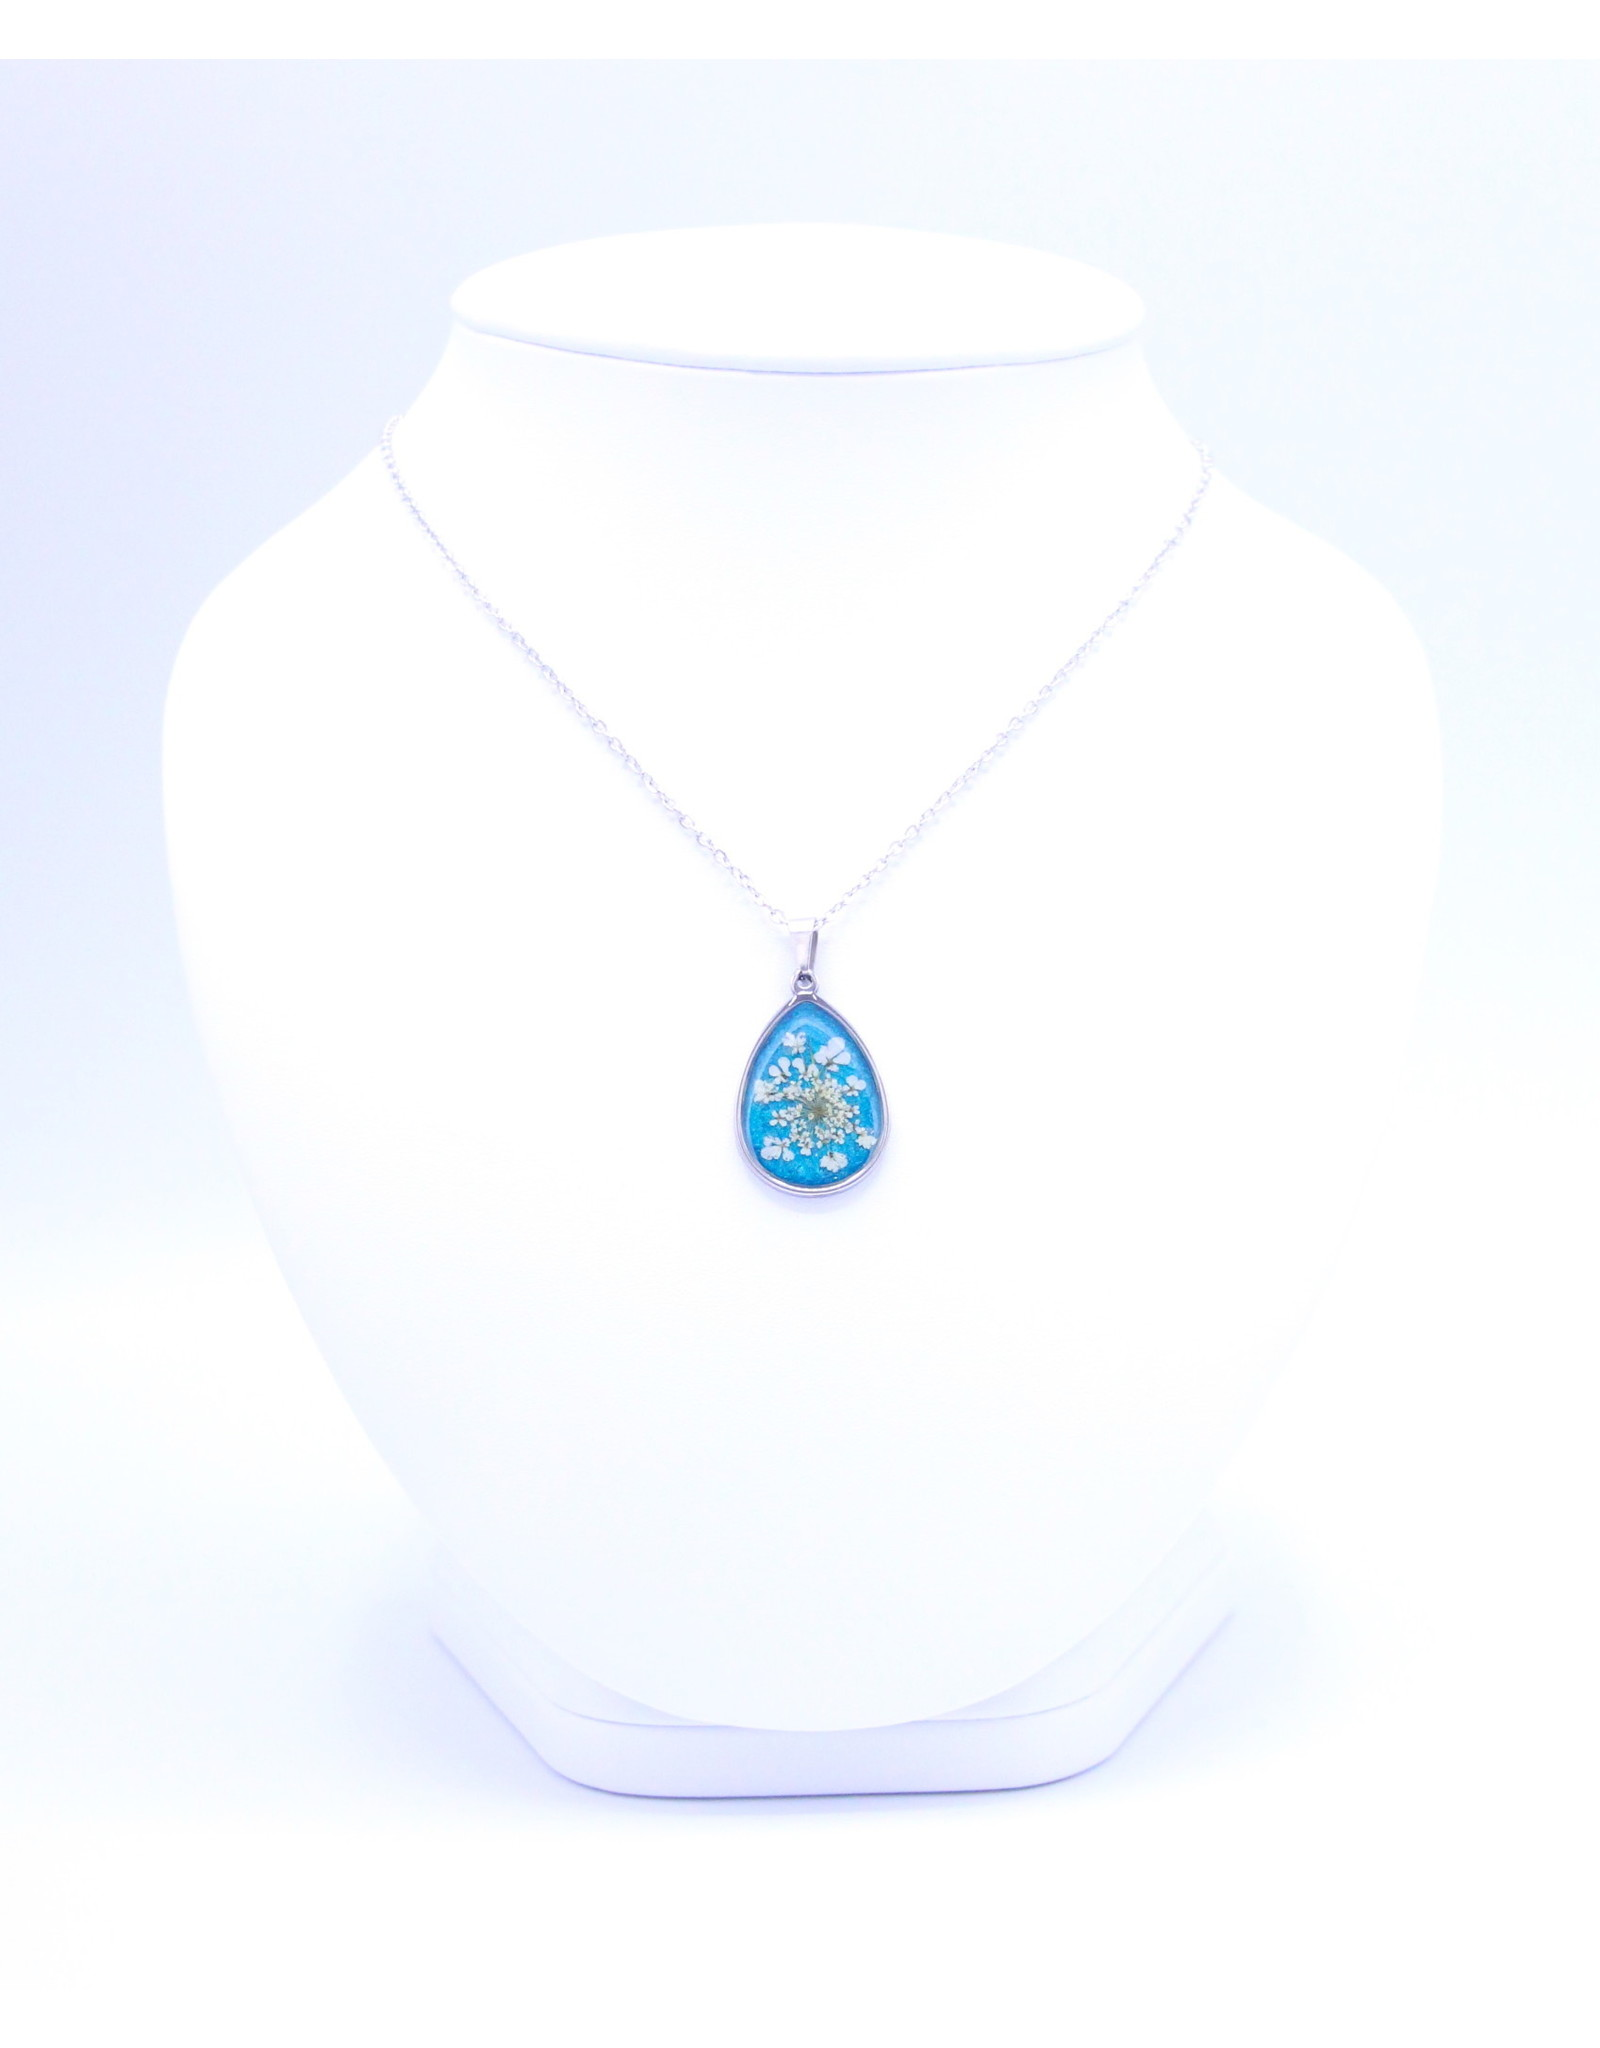 25mm Queen Anne's Lace Necklace Blue - N25QAB3